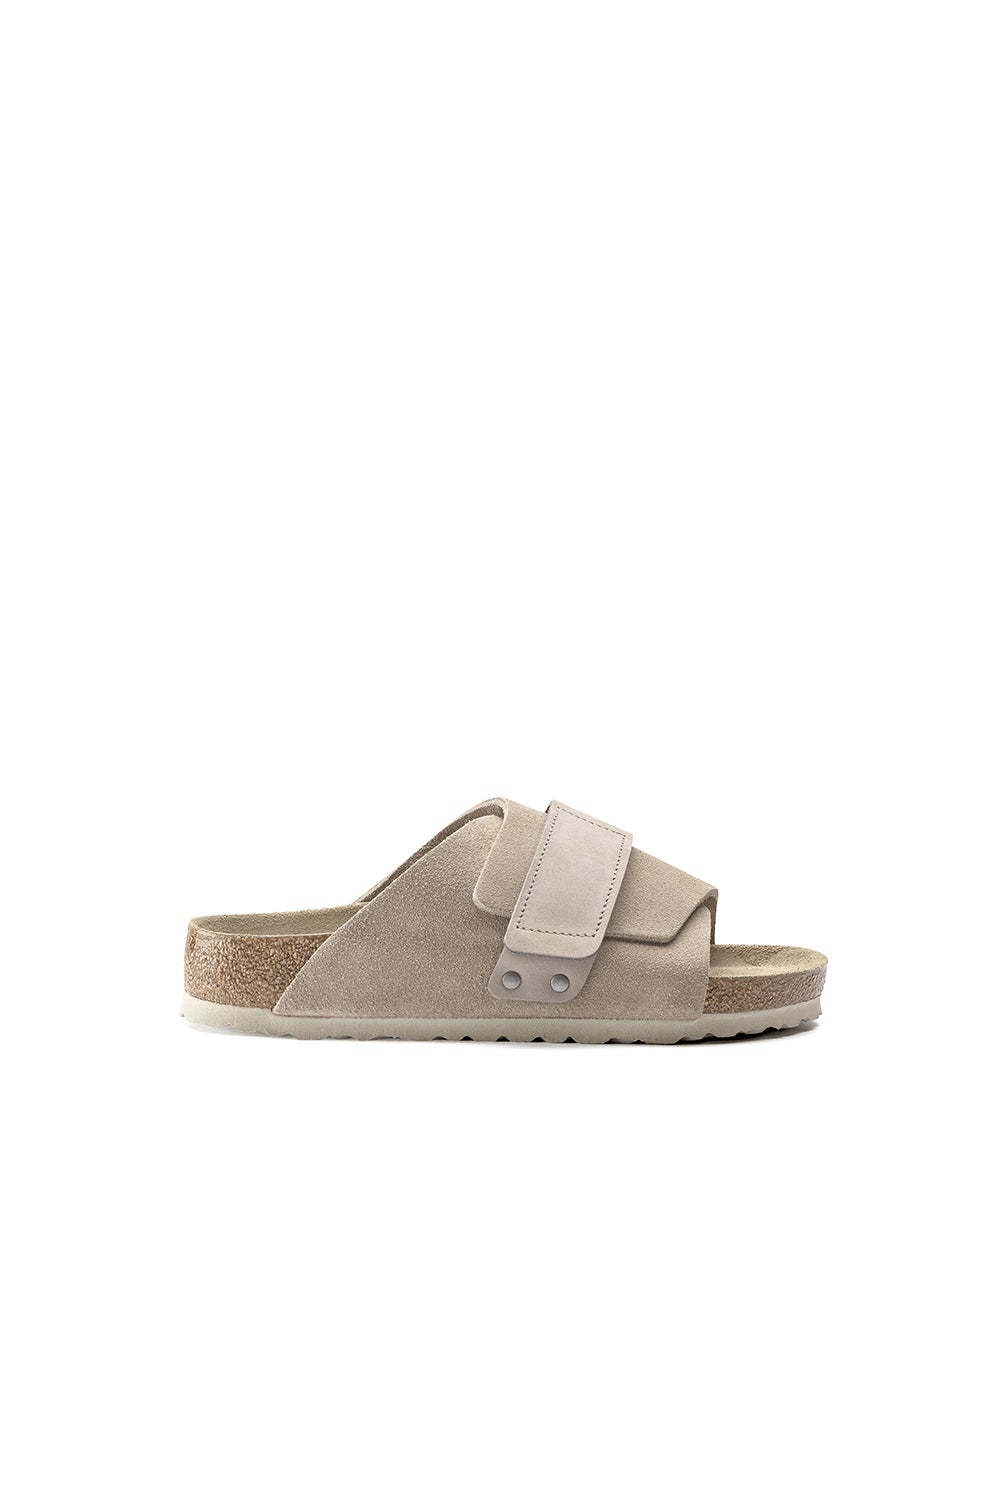 Birkenstock Kyoto SFB Suede/Leather Grey Taupe